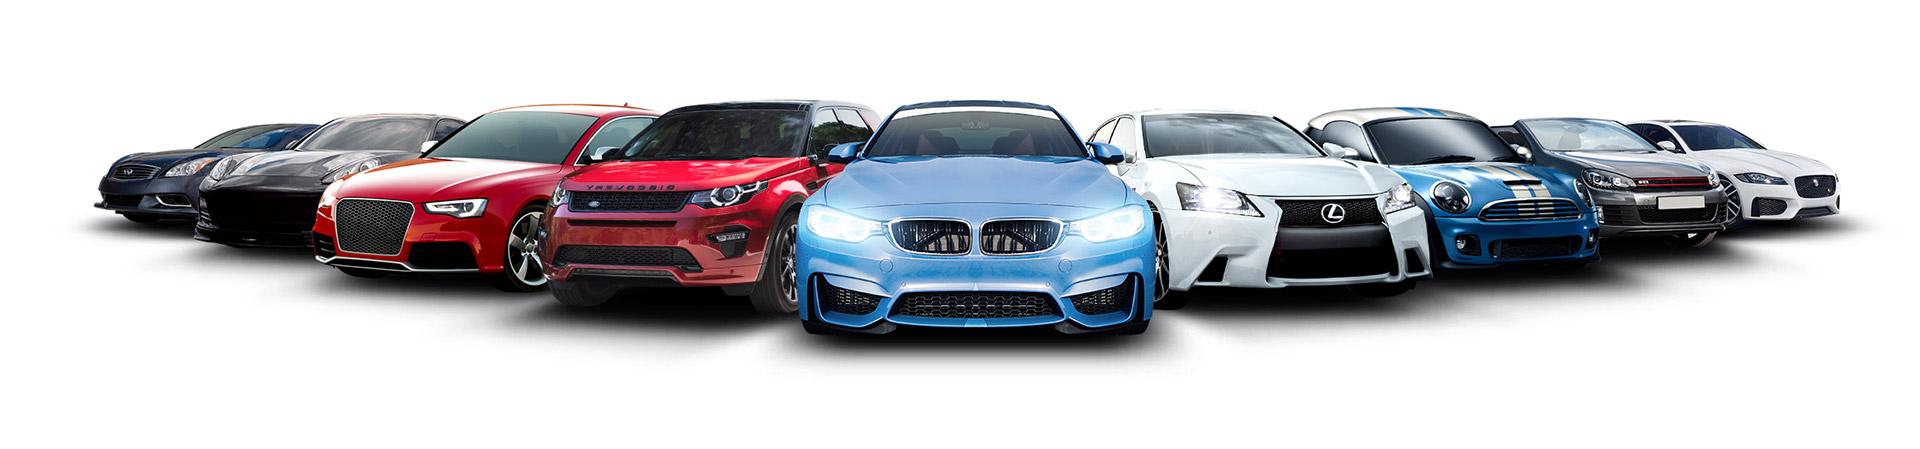 Services for European and Asian Vehicles | Sport Motoring